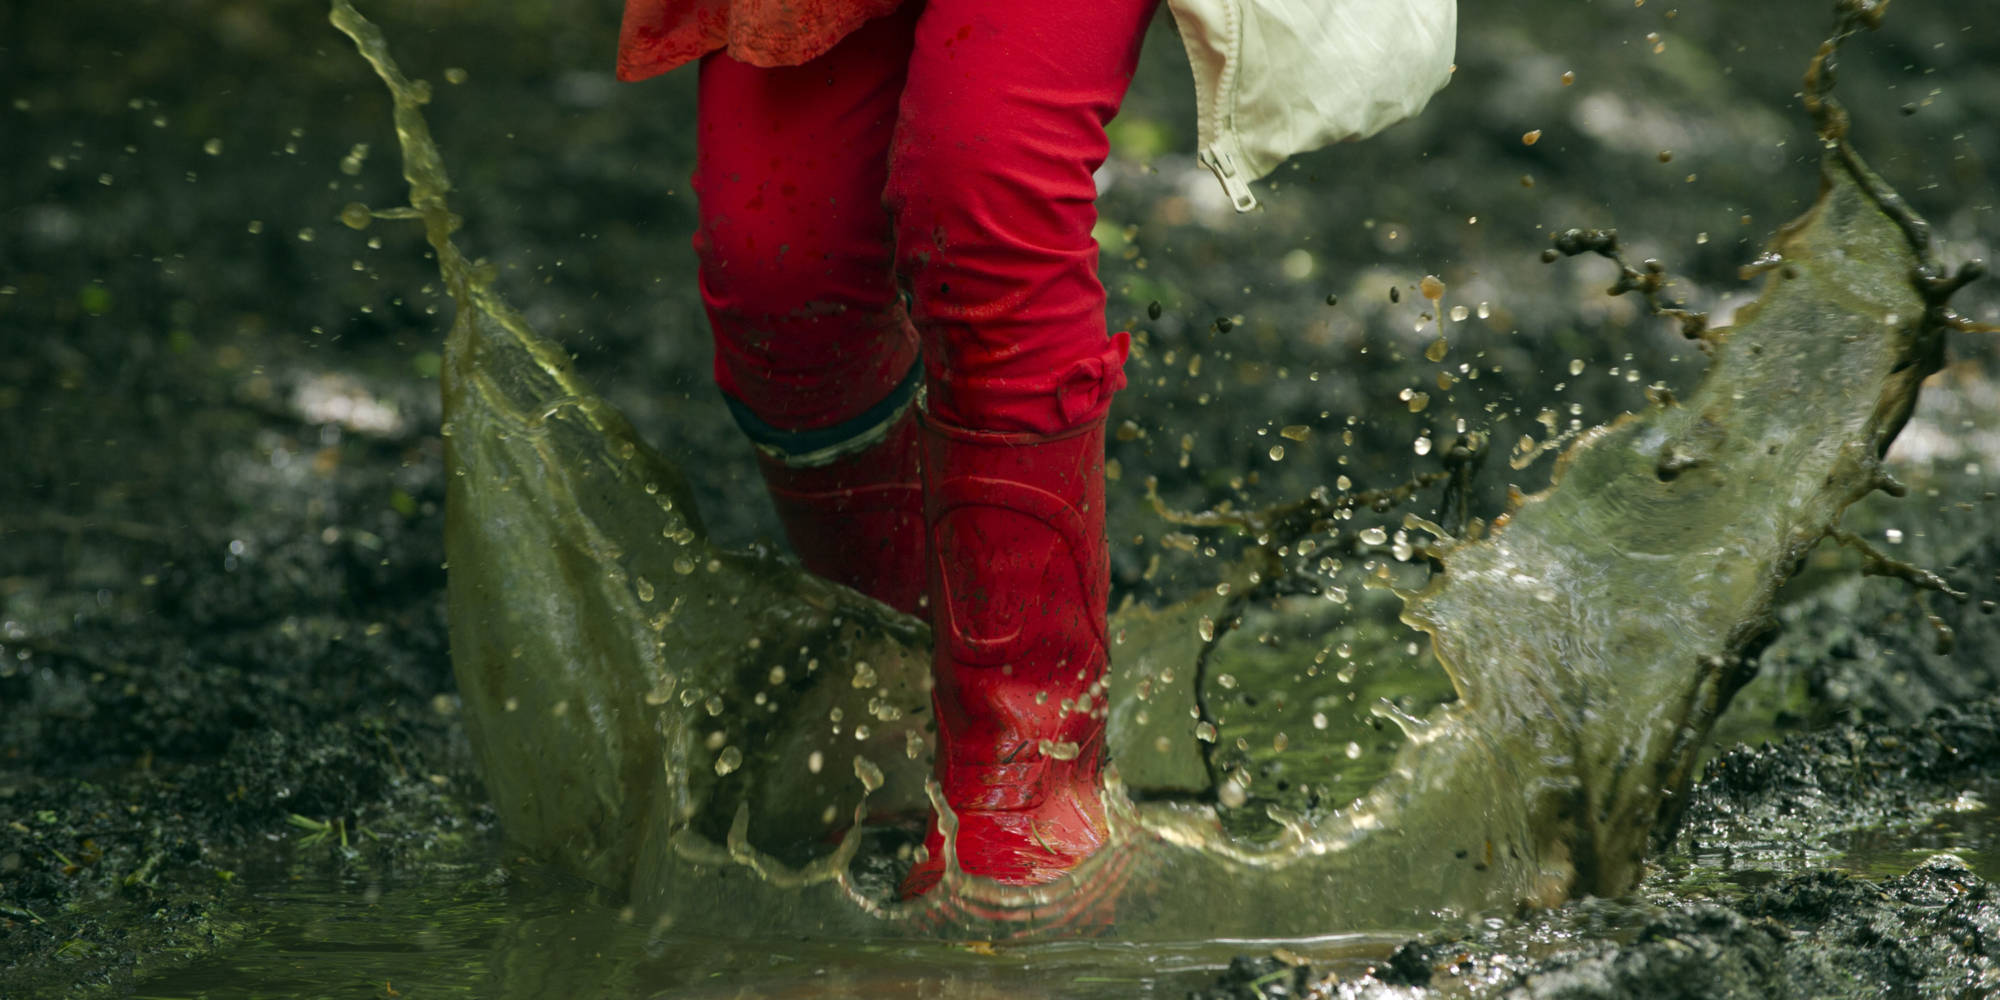 young girl splasing in a puddle